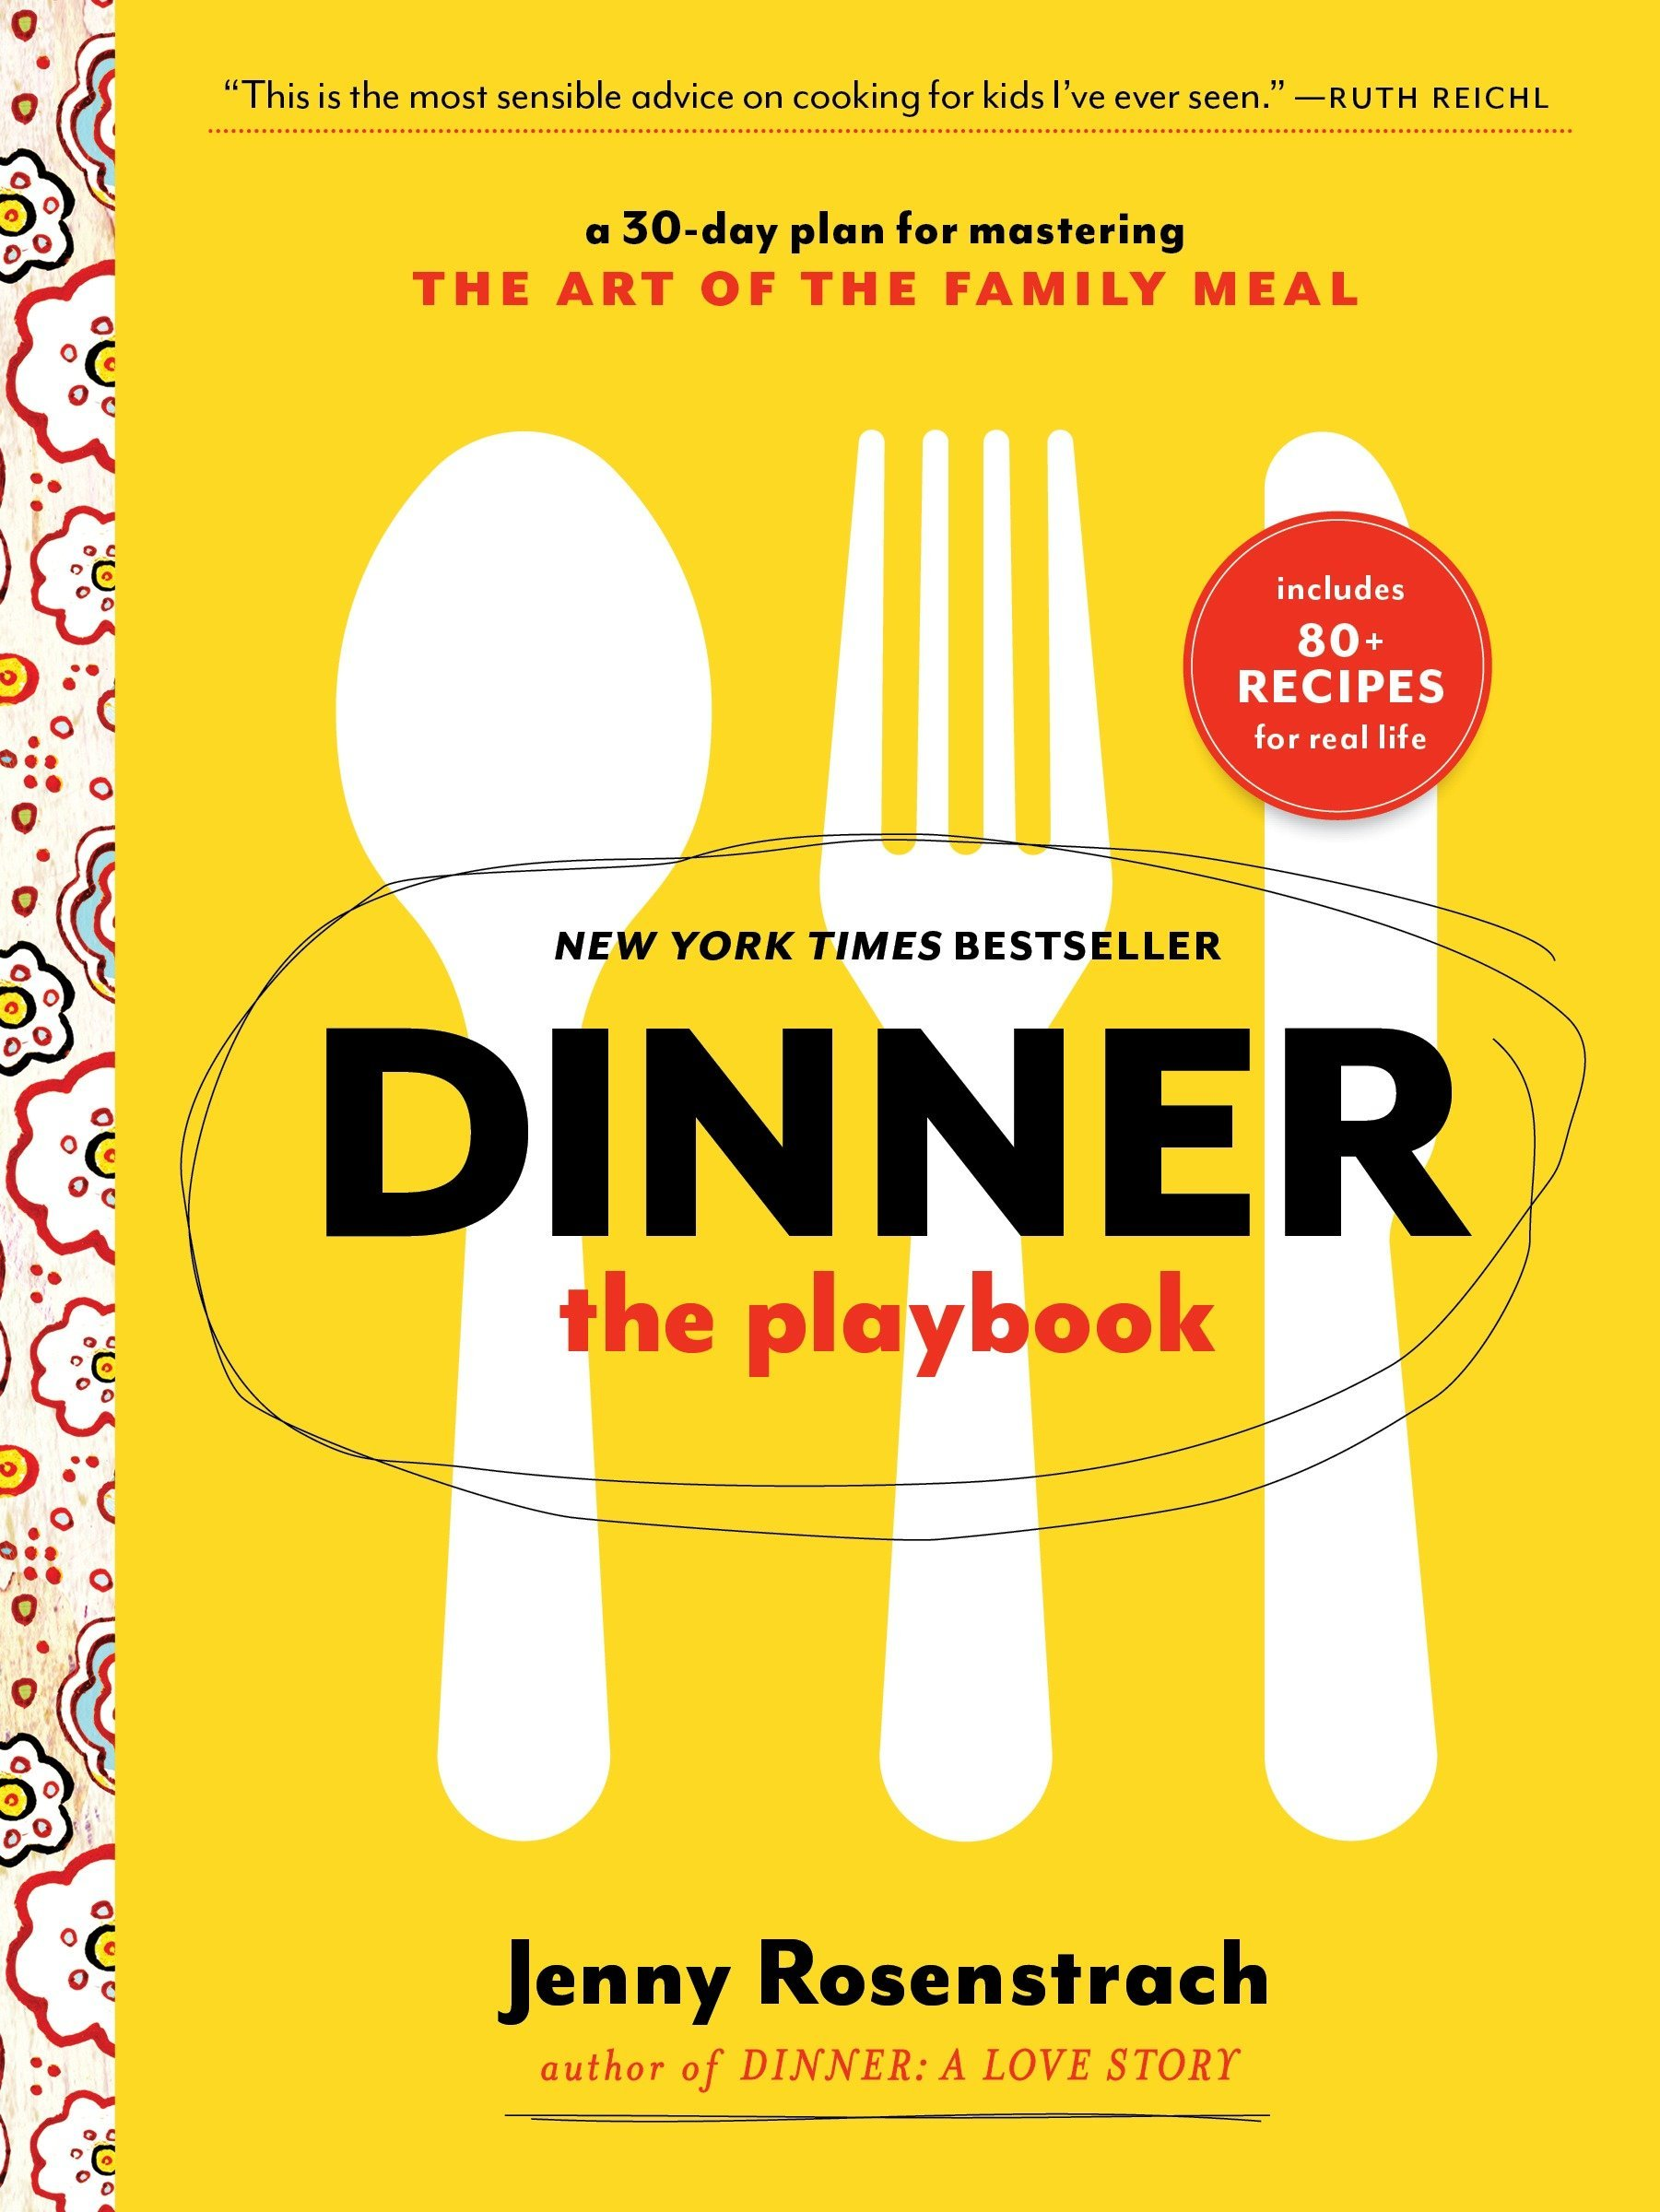 Dinner Playbook 30 Day Mastering Family product image